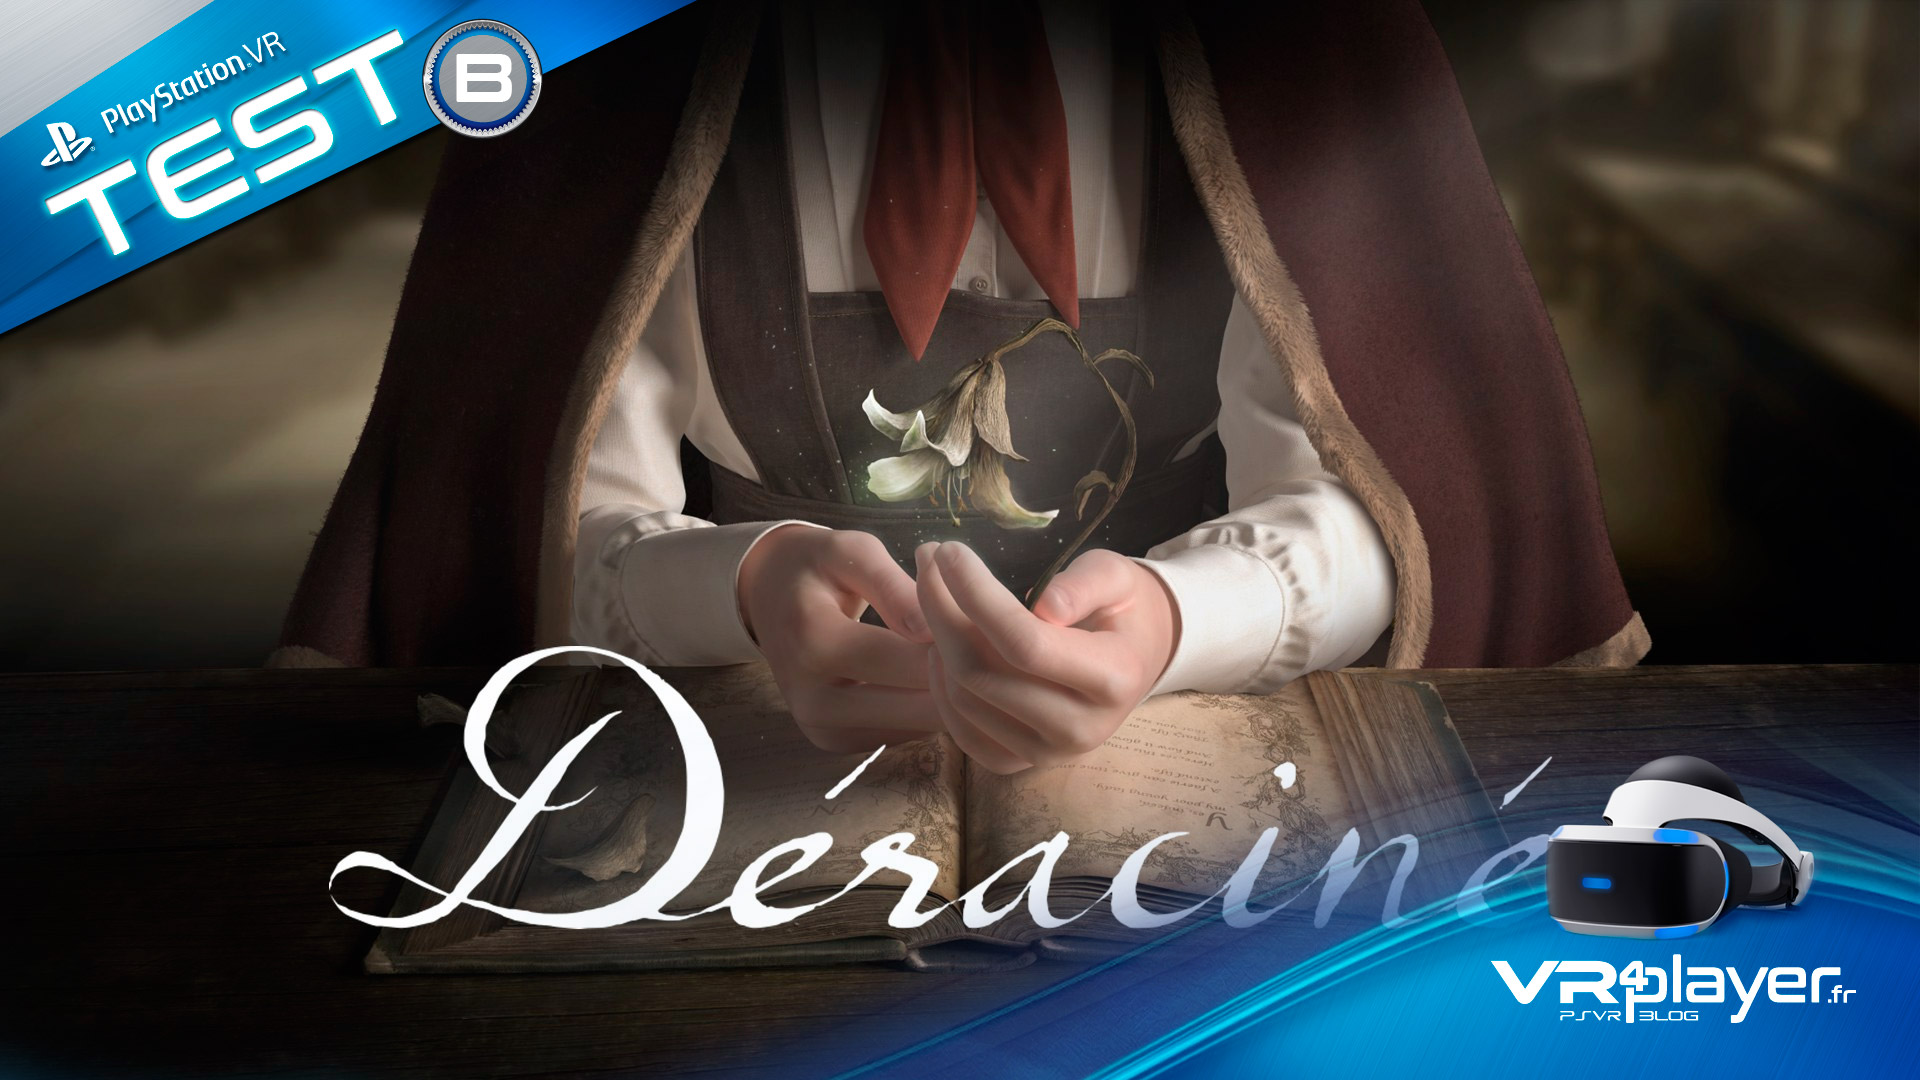 Déraciné From Software Test VR4Player Japan Studio PSVR PlayStation VR